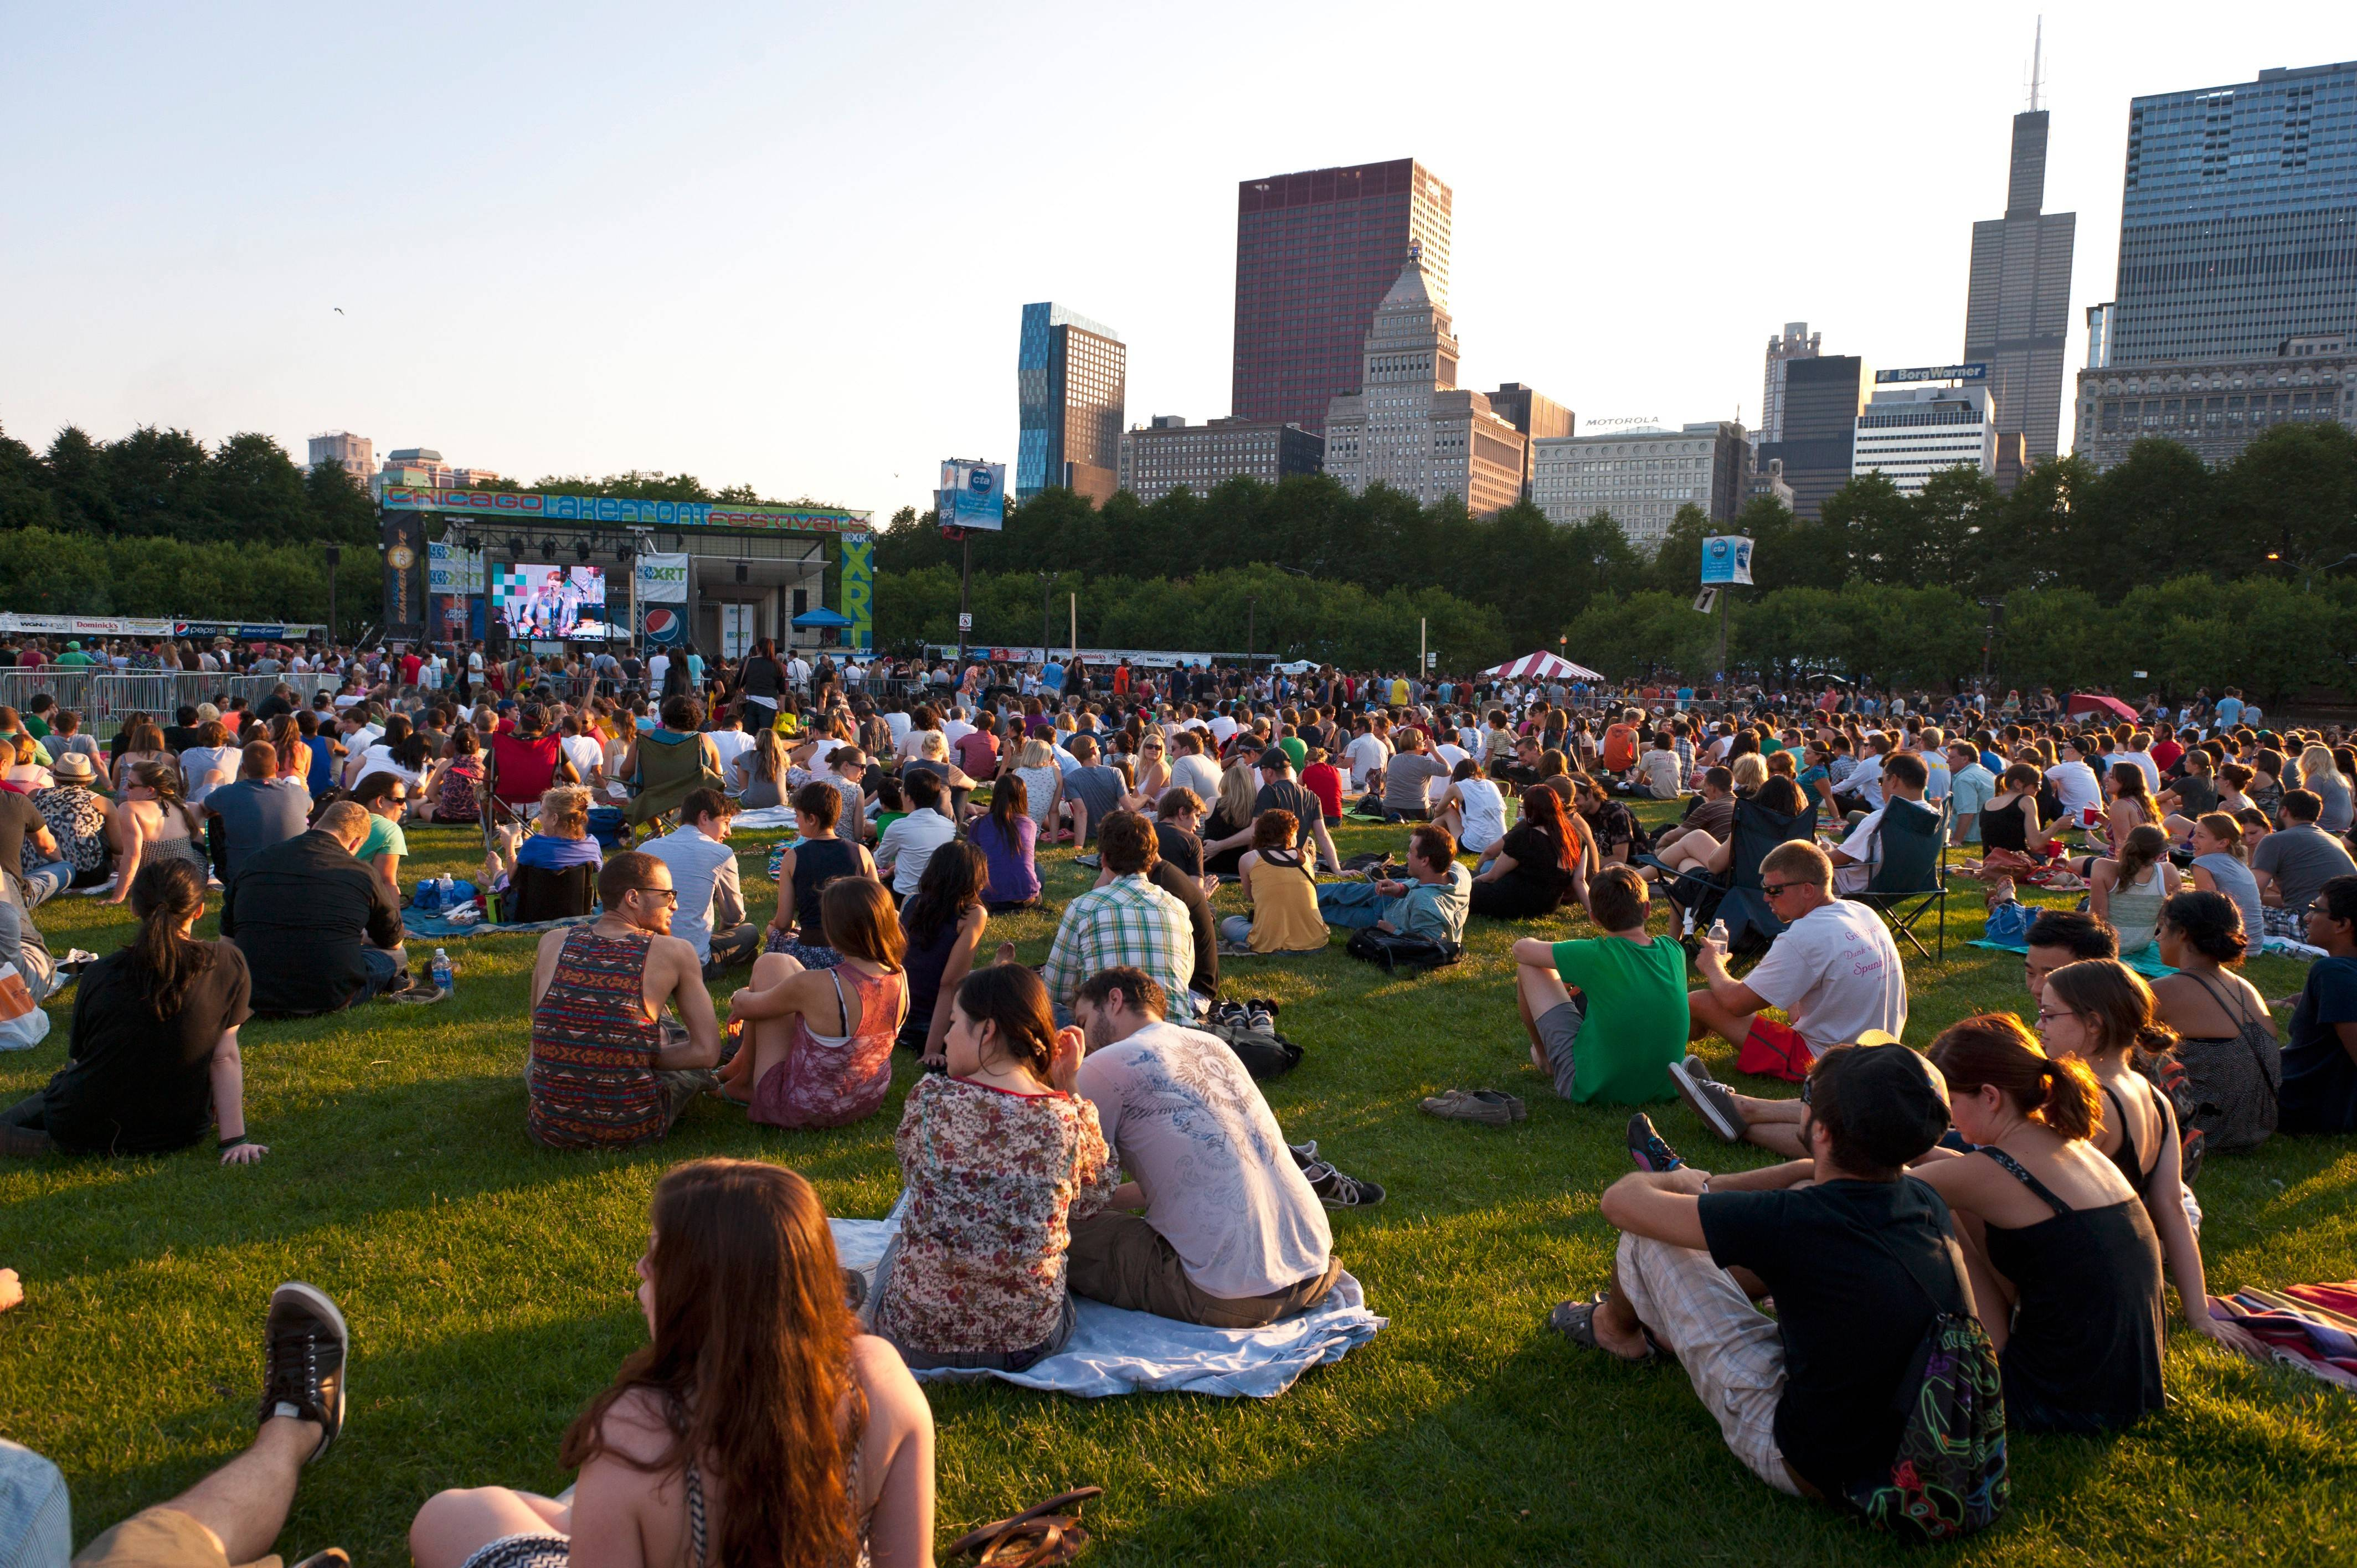 Crowds settle in early to enjoy the free Taste of Chicago concerts at the Petrillo Music Shell.